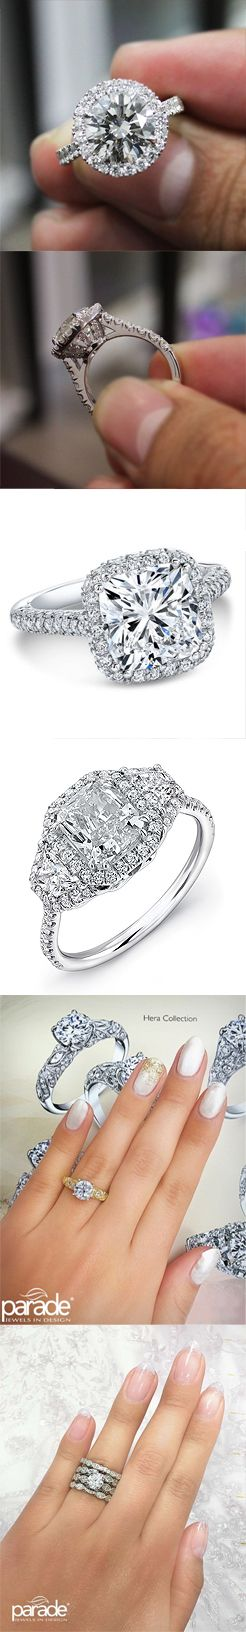 Halo Collection at kingofjewelry.com